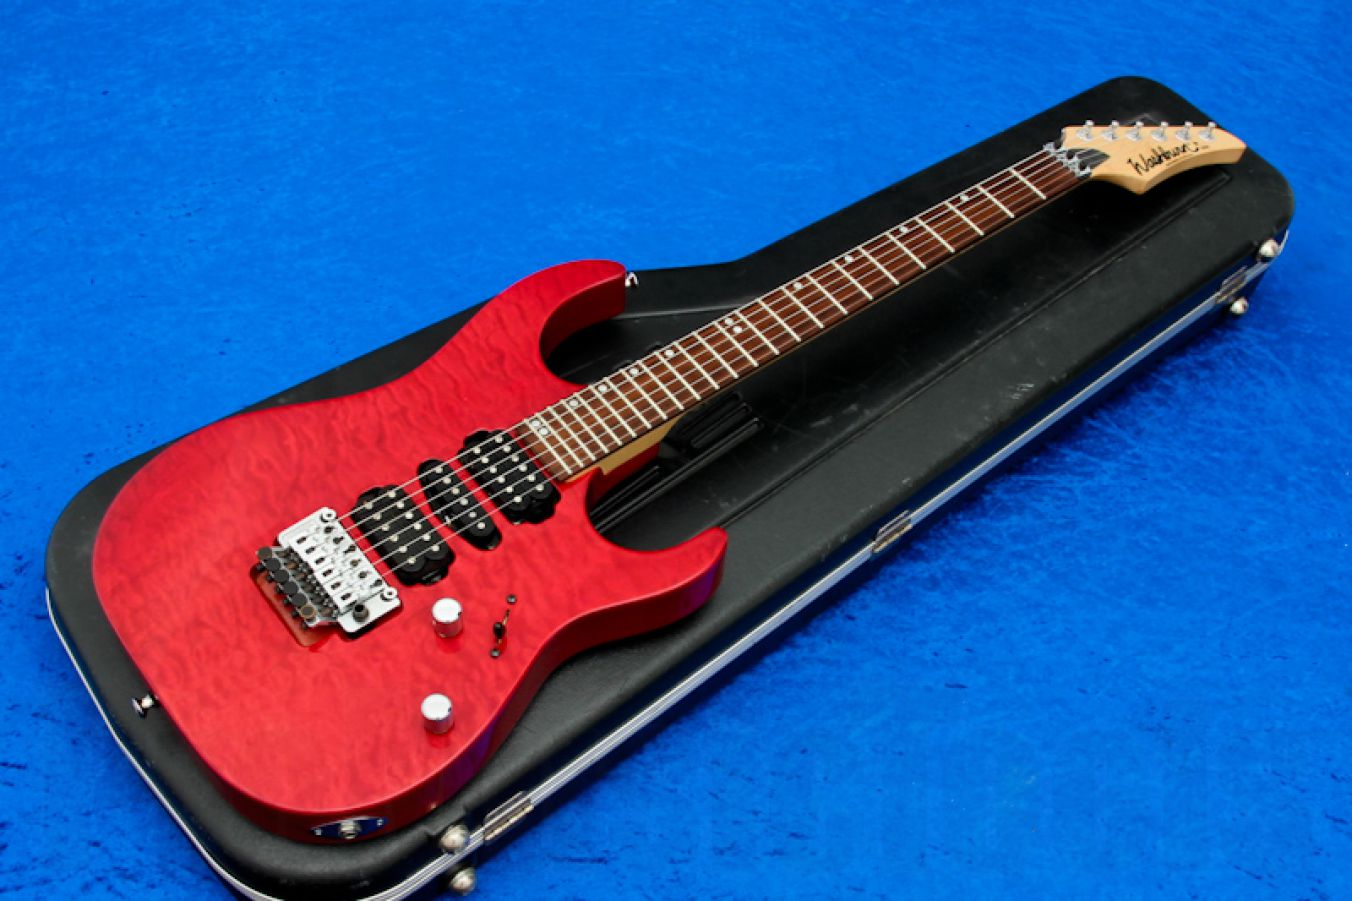 Washburn USA MG-104 trans red